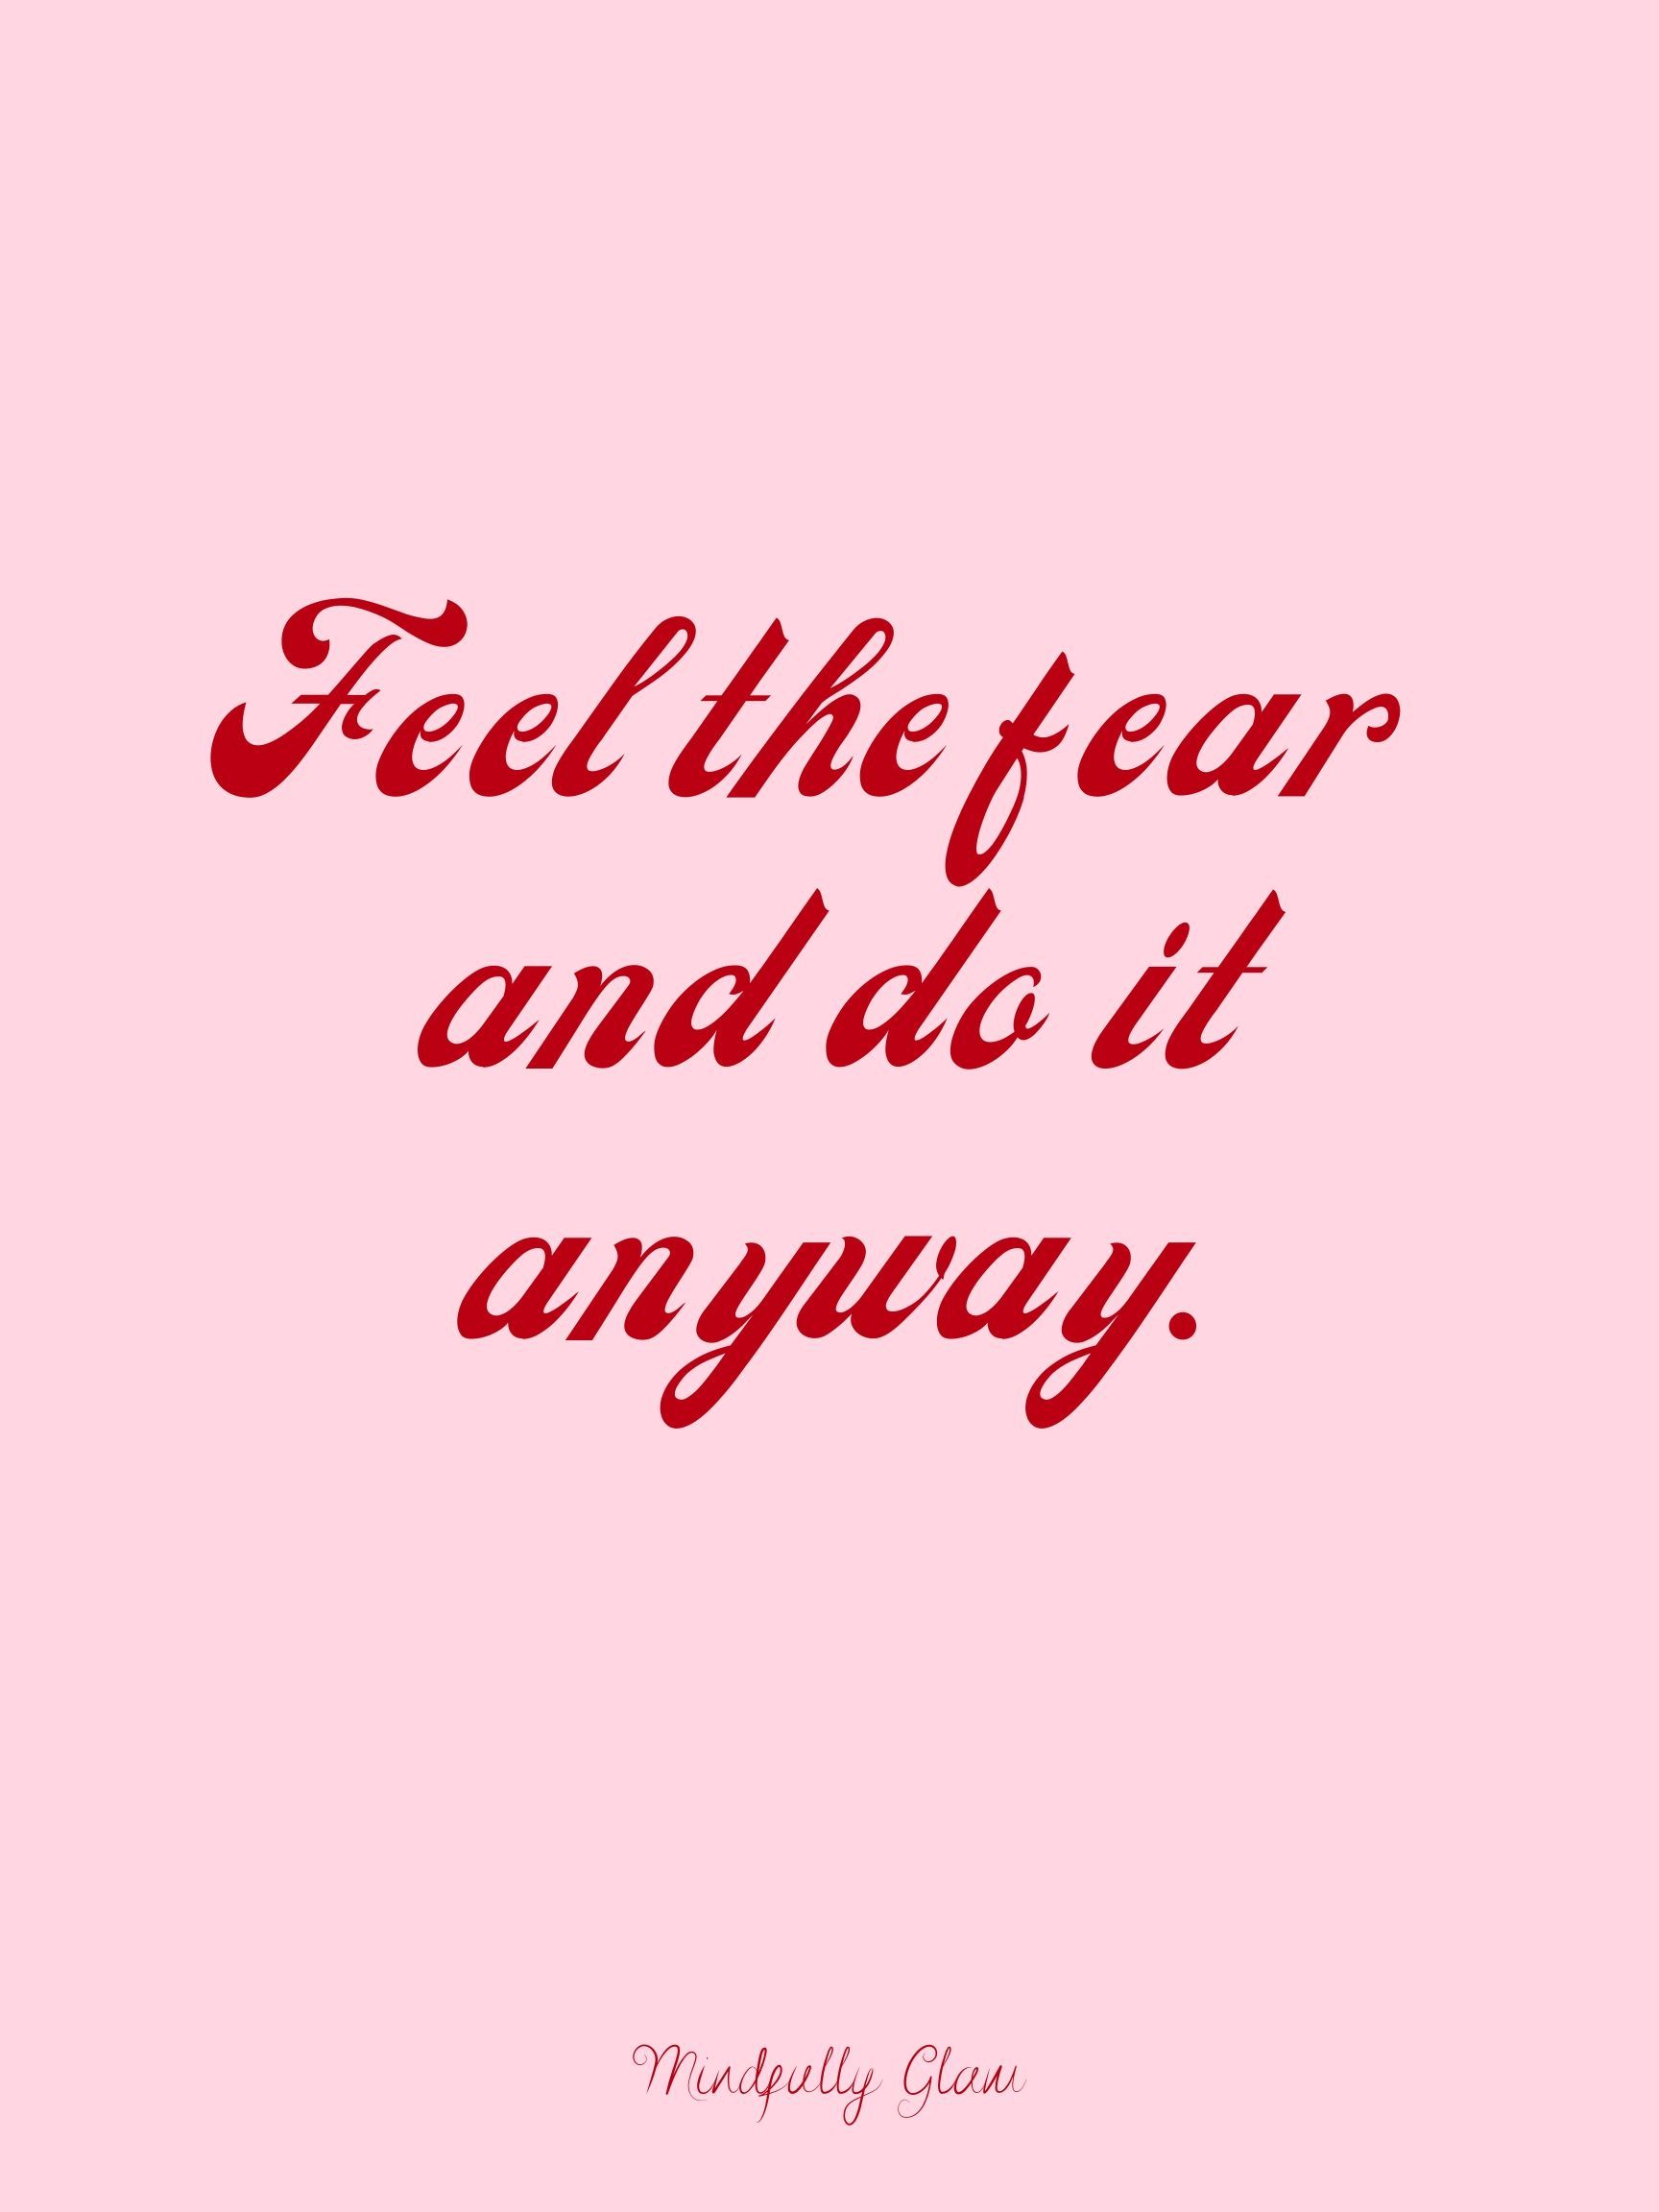 15 Inspiring and Motivational Quotes on Fear